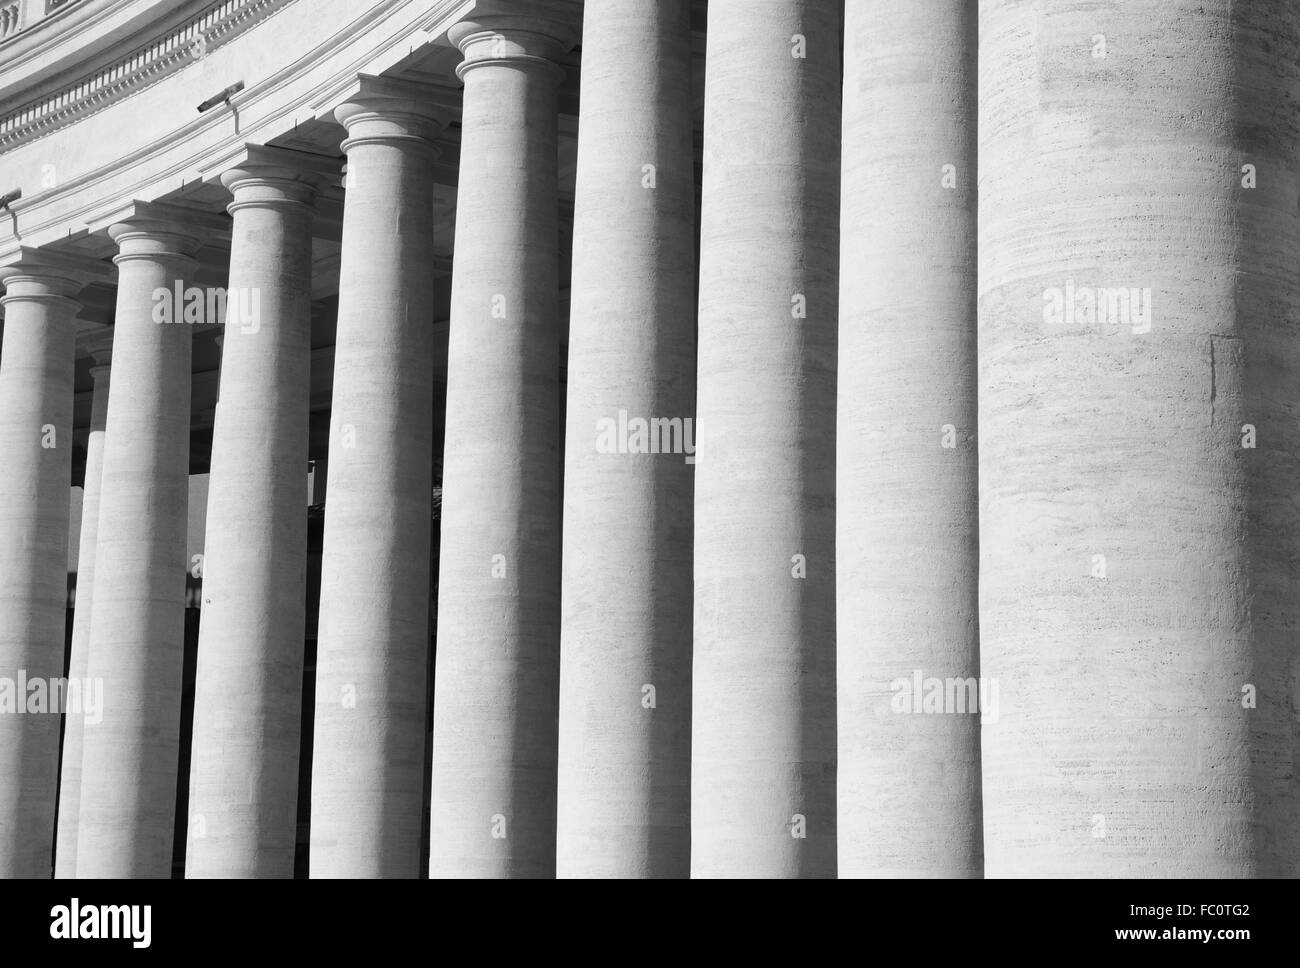 Stone Pillars - Stock Image